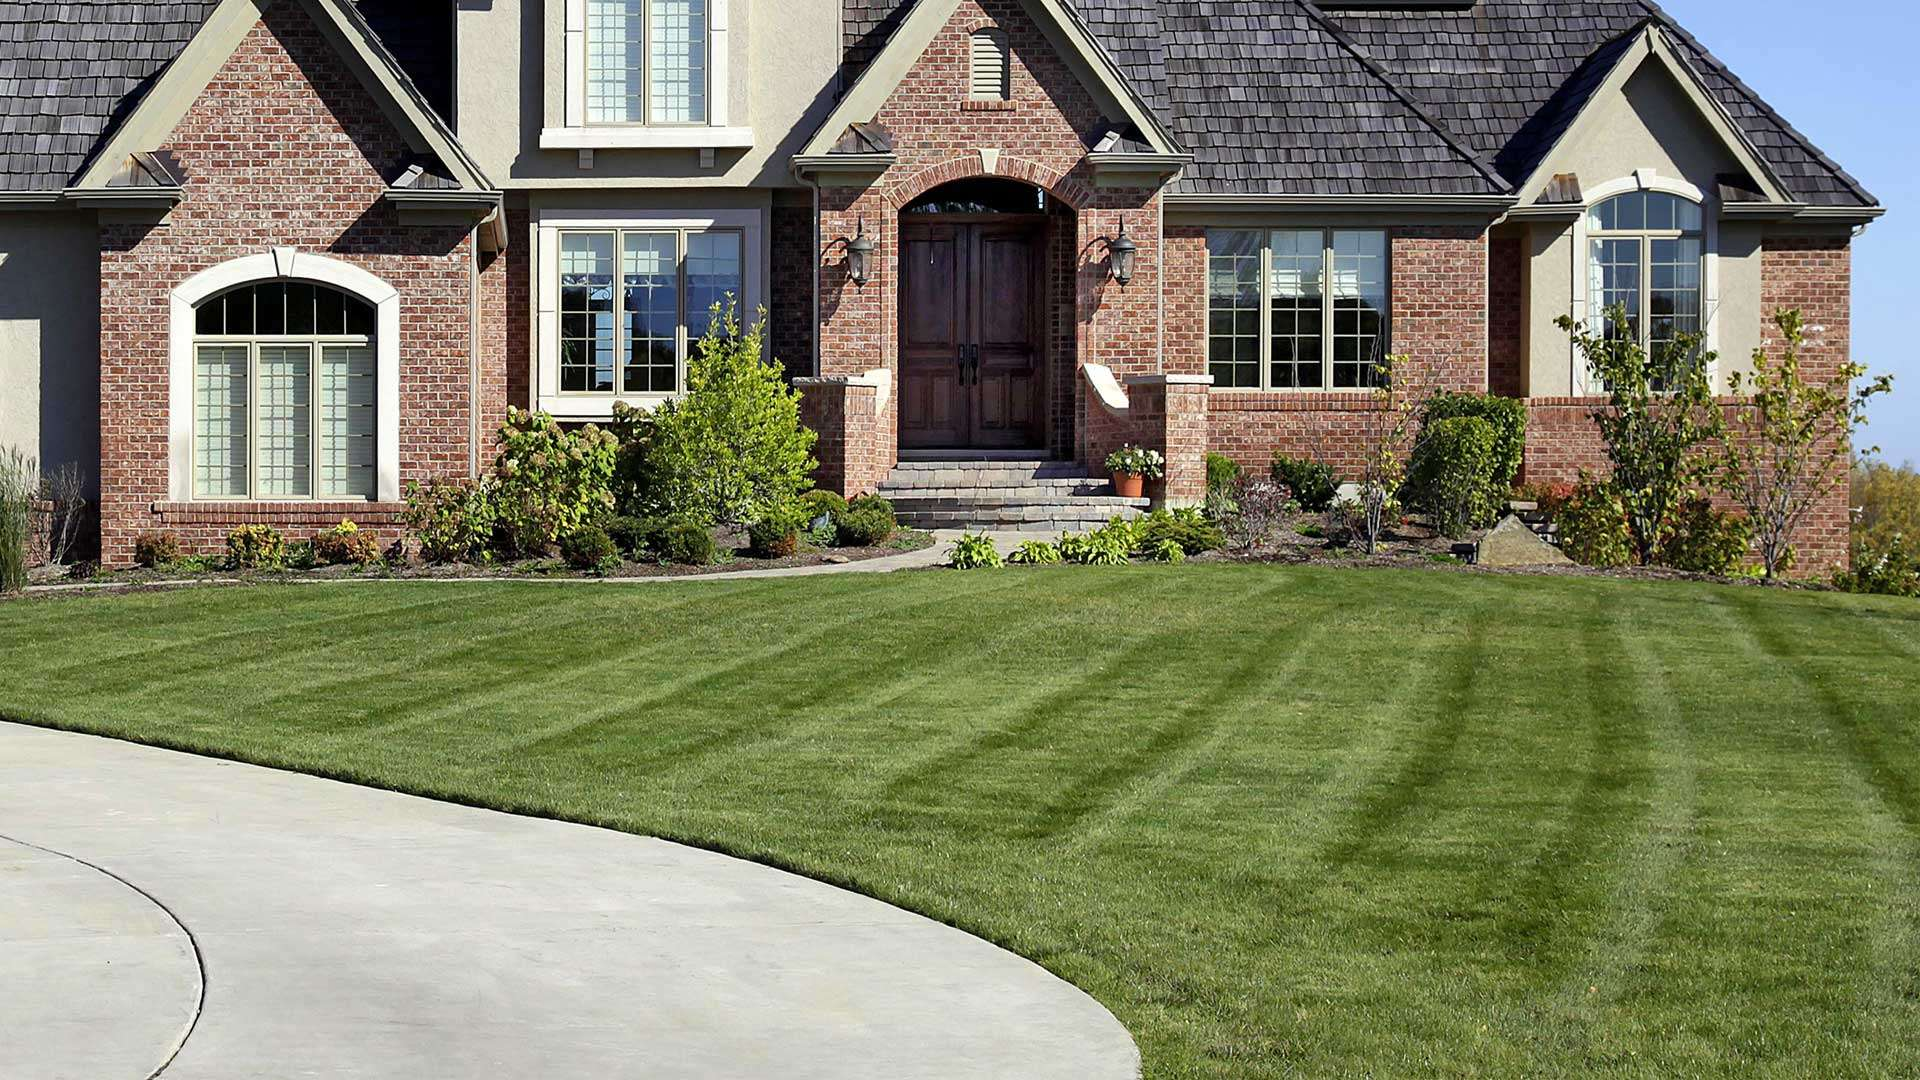 Lawn mowing and maintenance services by Green Pastures Lawn Maintenance LLC at a home in Franklinton, LA.